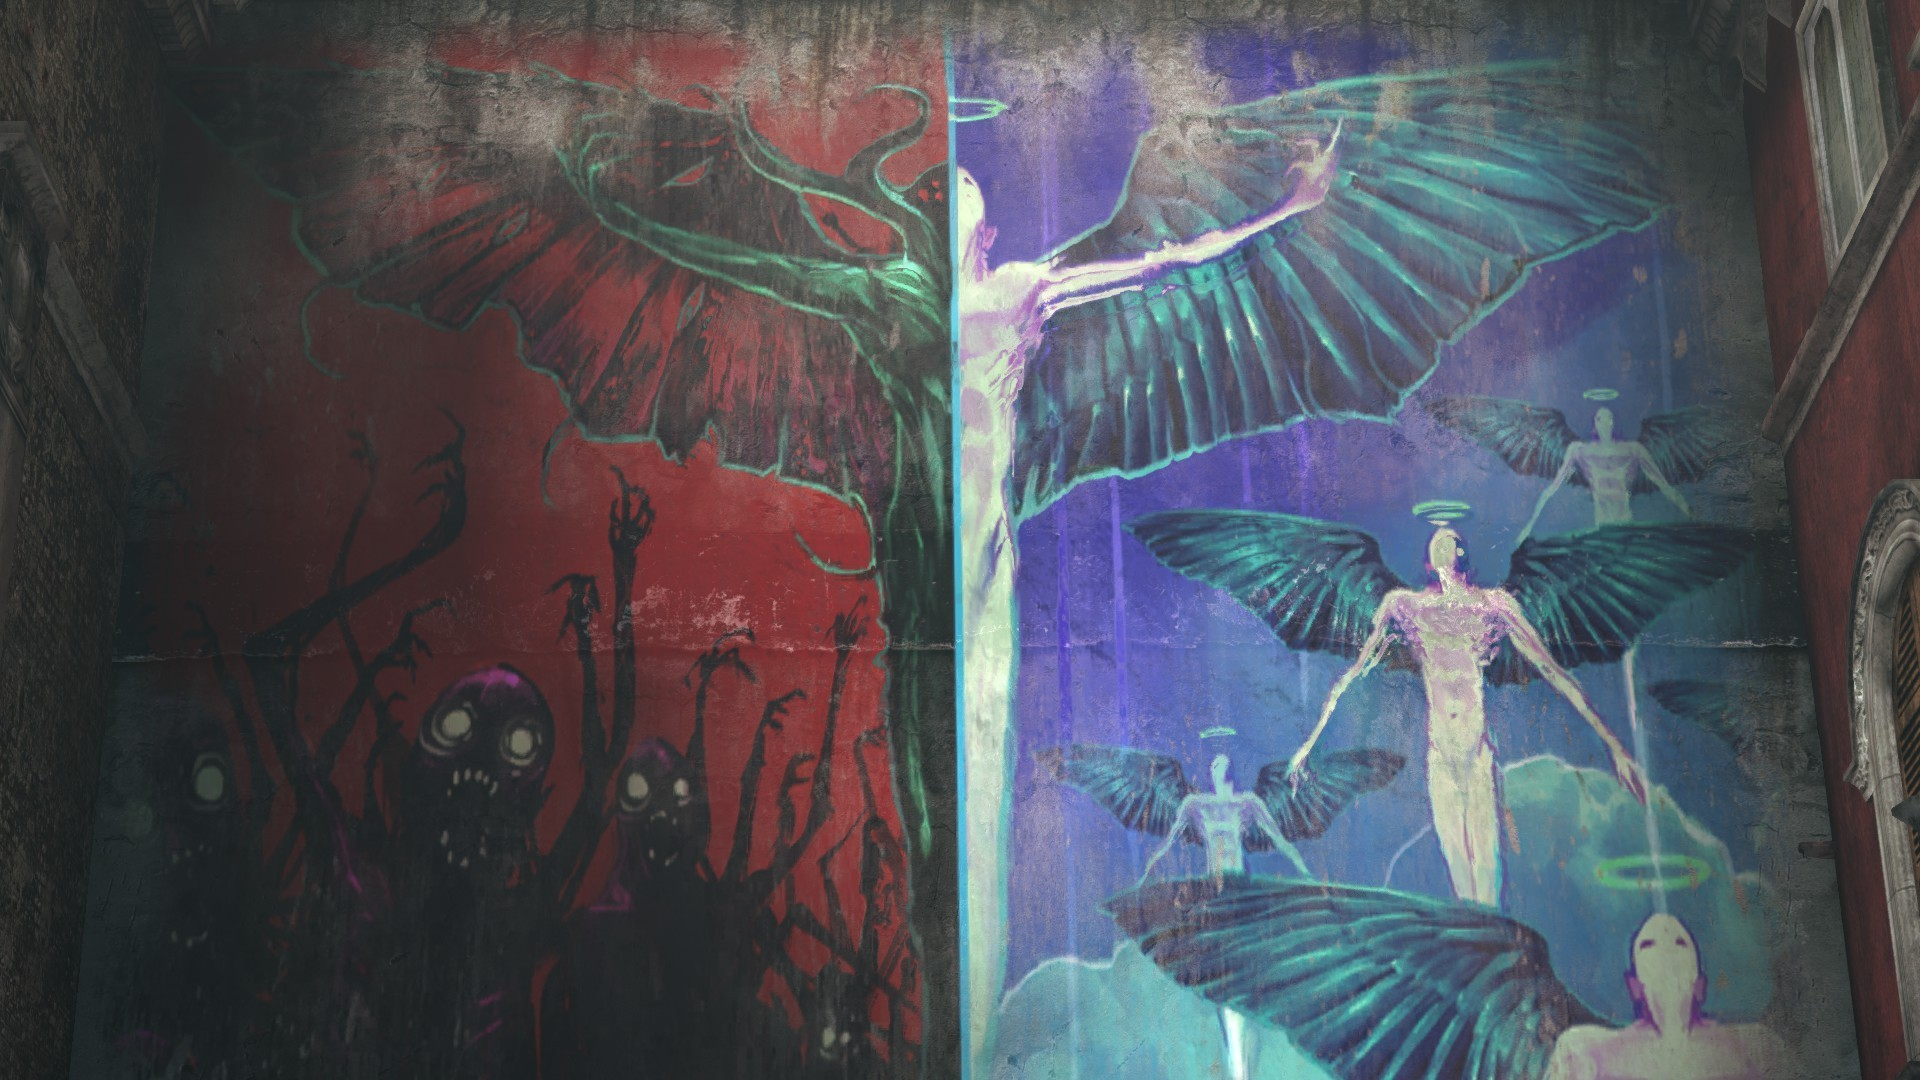 1920x1080 Angels And Demons Graffiti Urban